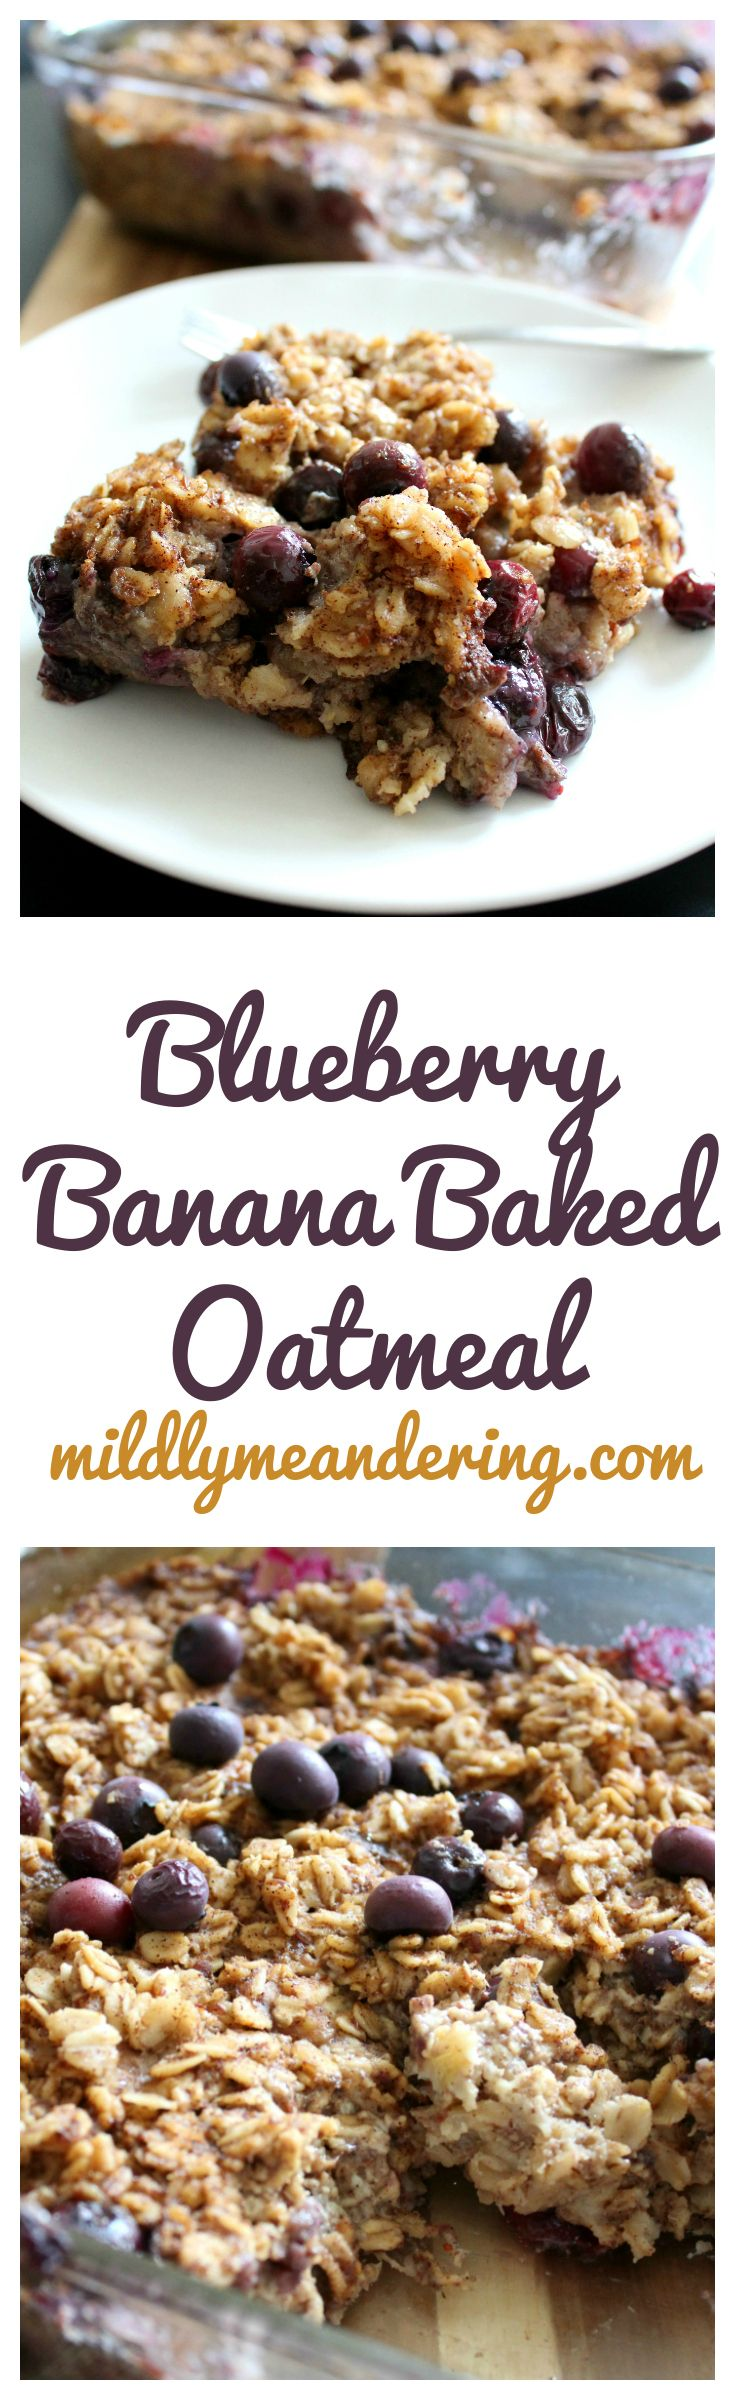 Blueberry Banana Baked Oatmeal - Mildly Meandering